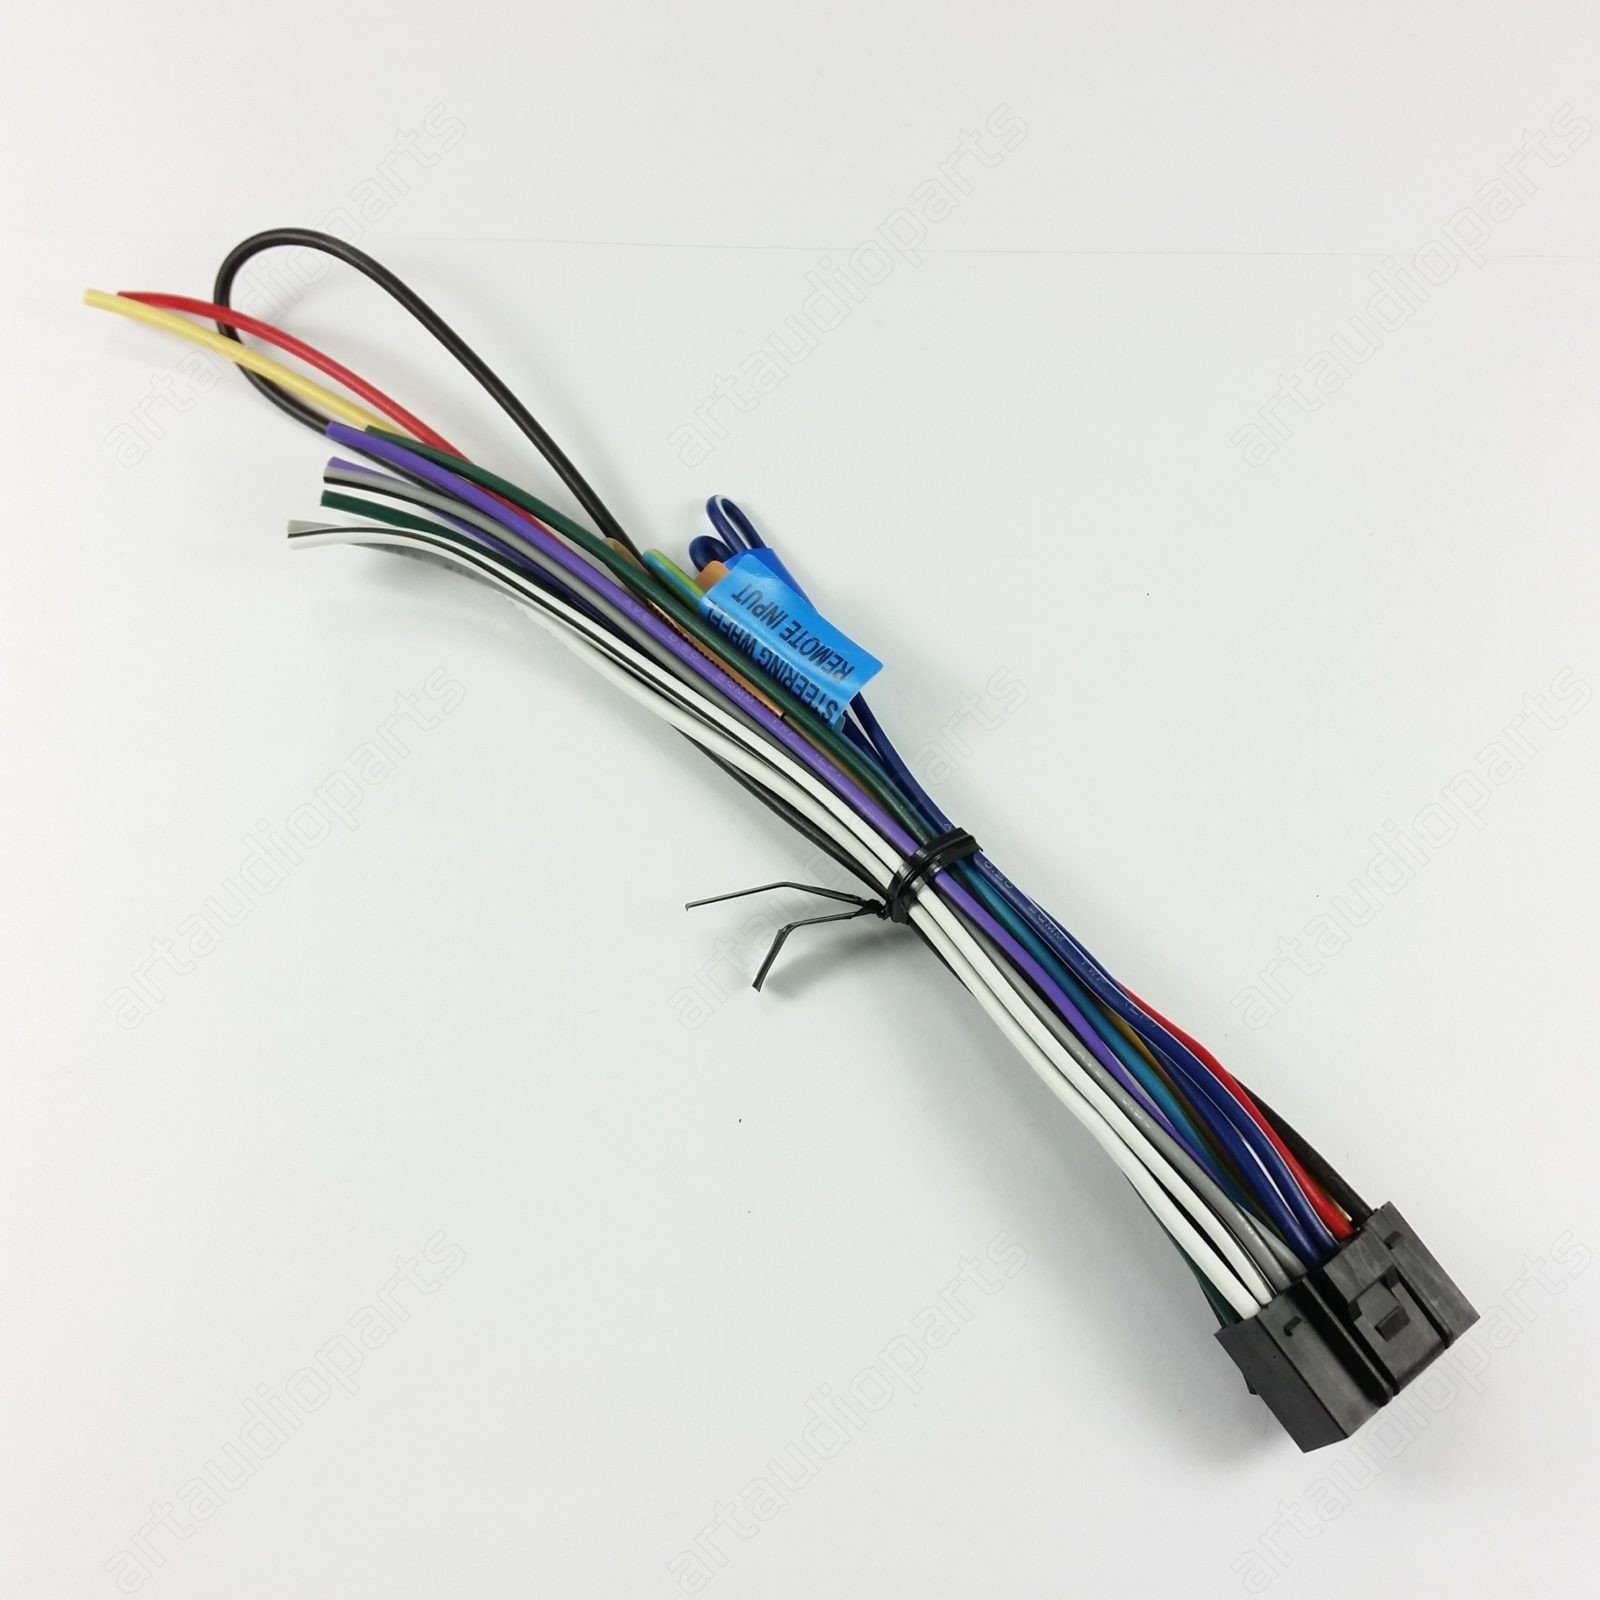 F5B26 Wire Harness Kenwood Kdc 348u | Wiring Resources on car amplifier wiring diagram, car stereo wiring diagram, marine stereo wiring diagram, kenwood kdc plug diagram, pioneer premier wiring diagram, head unit wiring diagram, pioneer amp wiring diagram, cd player wiring diagram,